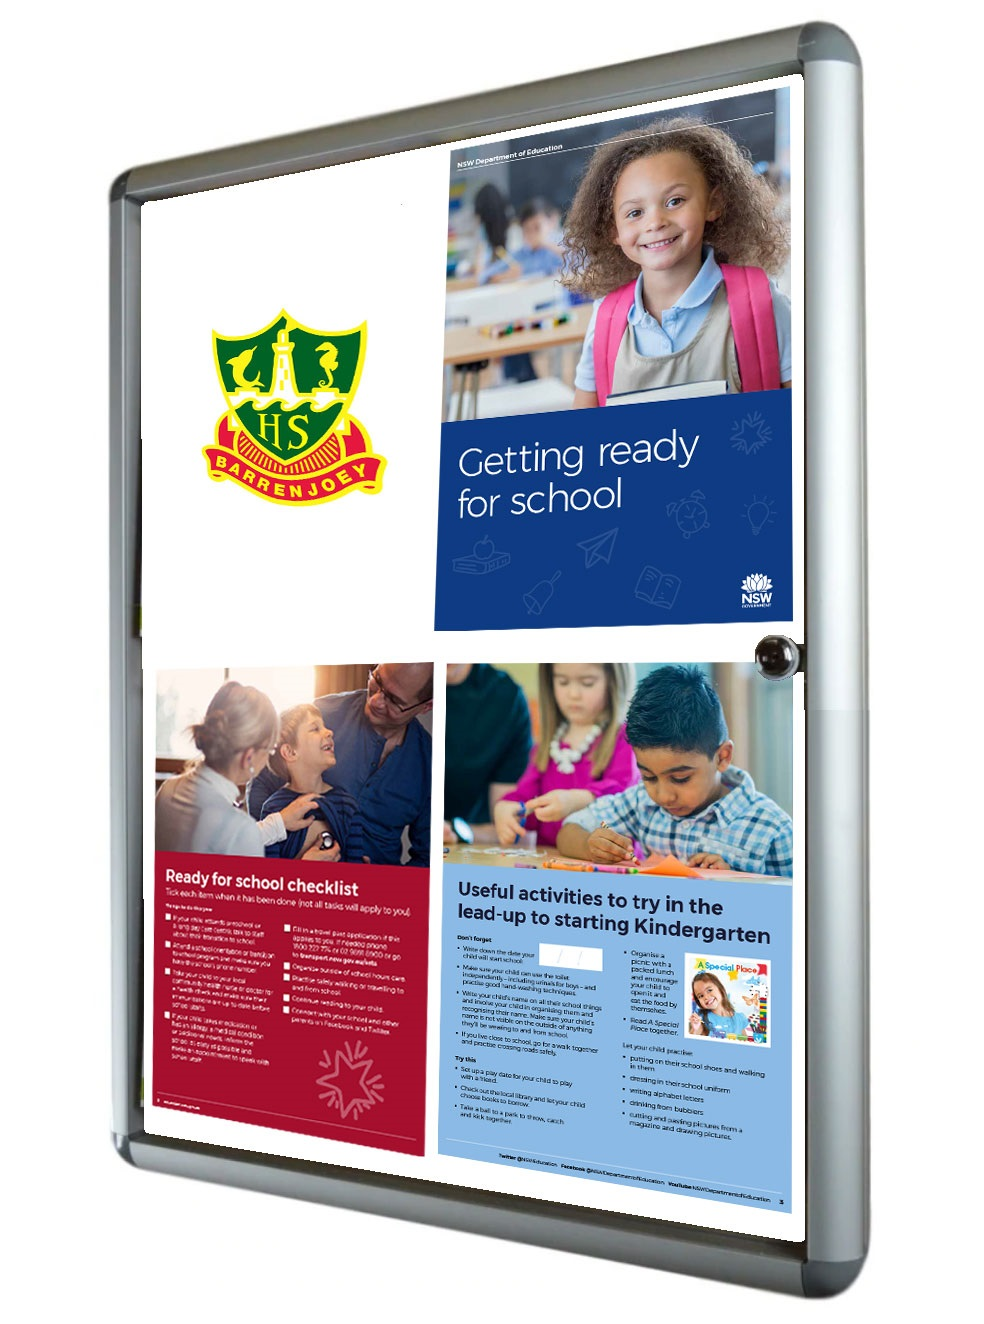 Bulletin Board Edusign School Banners Flags Signs Amp More